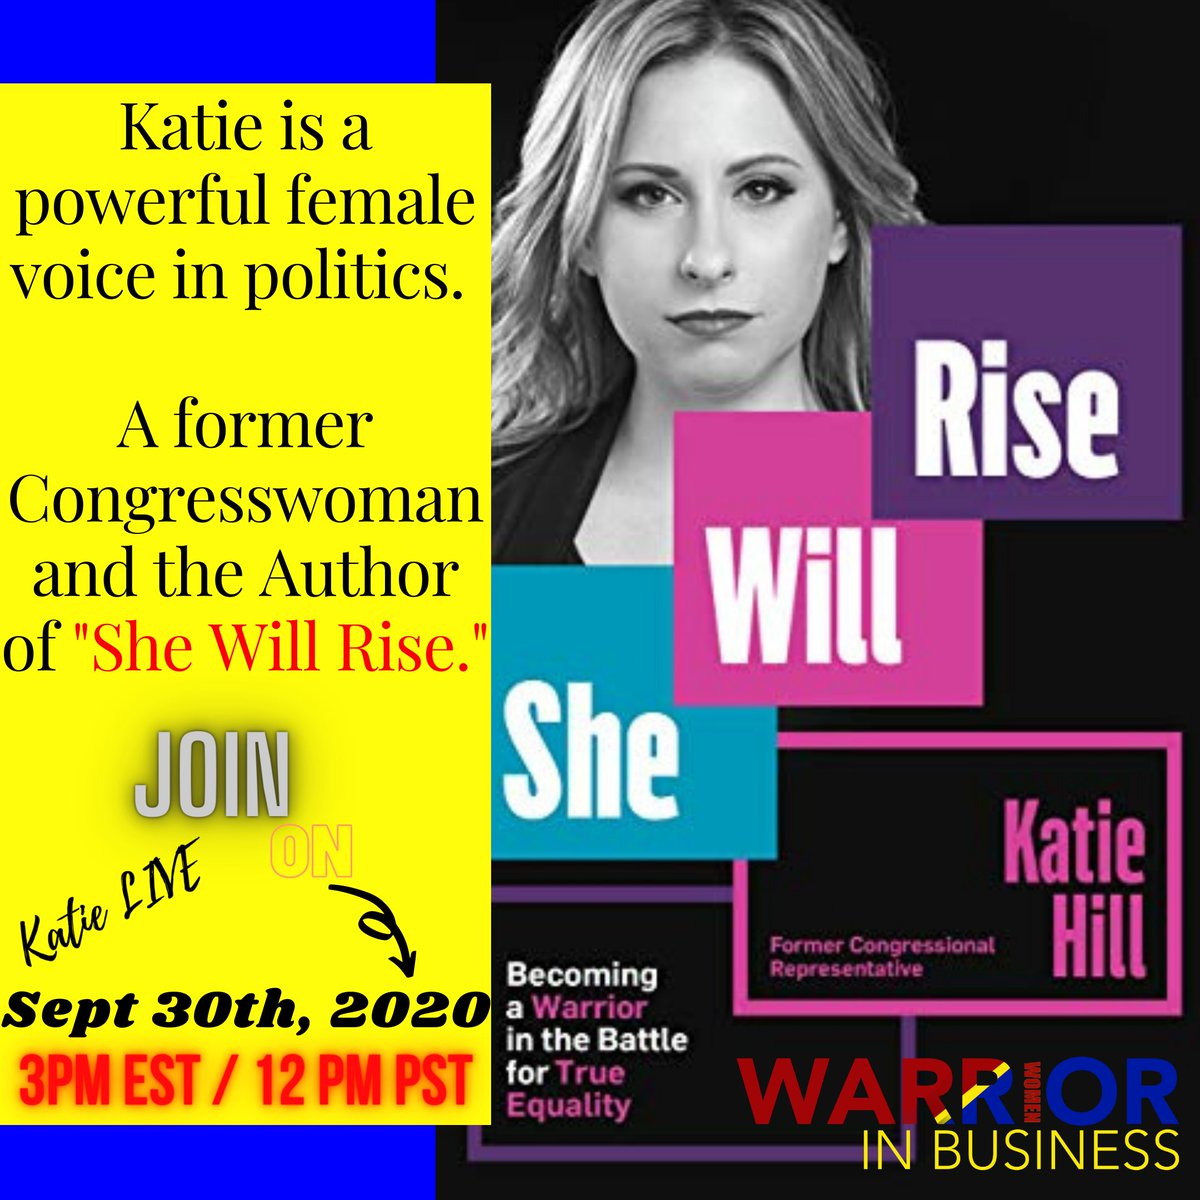 Women in Politics & Law , as we have witnessed in the passing of RBG this week are critical to gaining equality. Katie Hill, Frm. Congresswoman & author, 'She Will Rise' will join WWIB Host Jasmine Sandler next Wed, 9/30. Listen, watch, win a book. RSVP https://t.co/ZbwFAWale3 https://t.co/Q4FT1Ivl3C